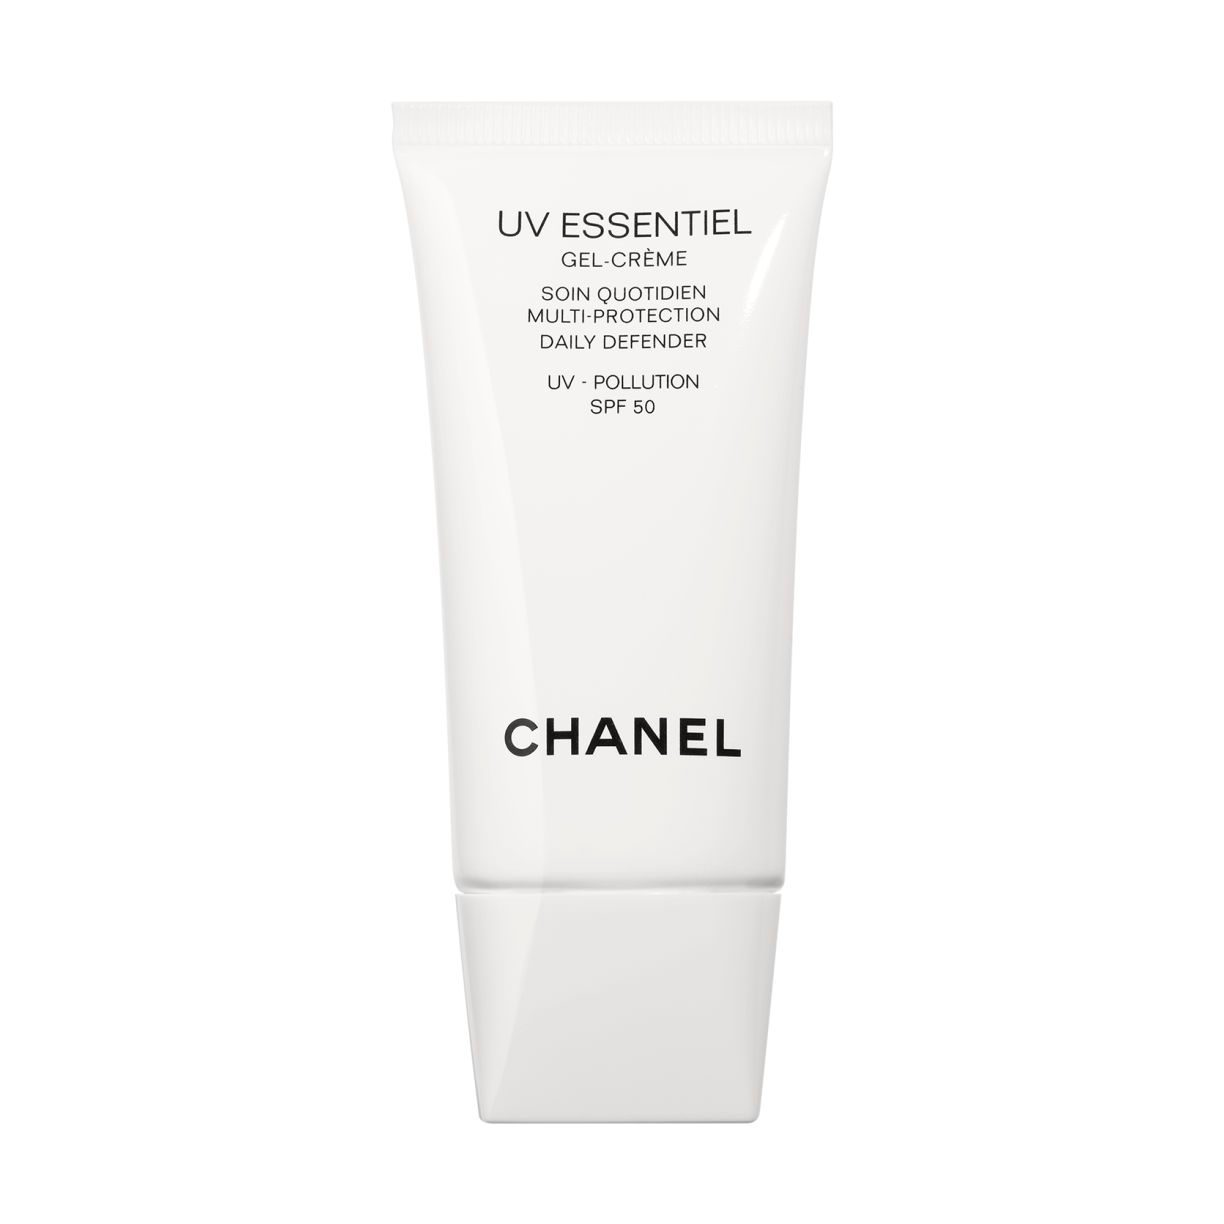 UV ESSENTIEL Gel-Crème MULTI-PROTECTION DAILY DEFENDER UV - POLLUTION SPF 50